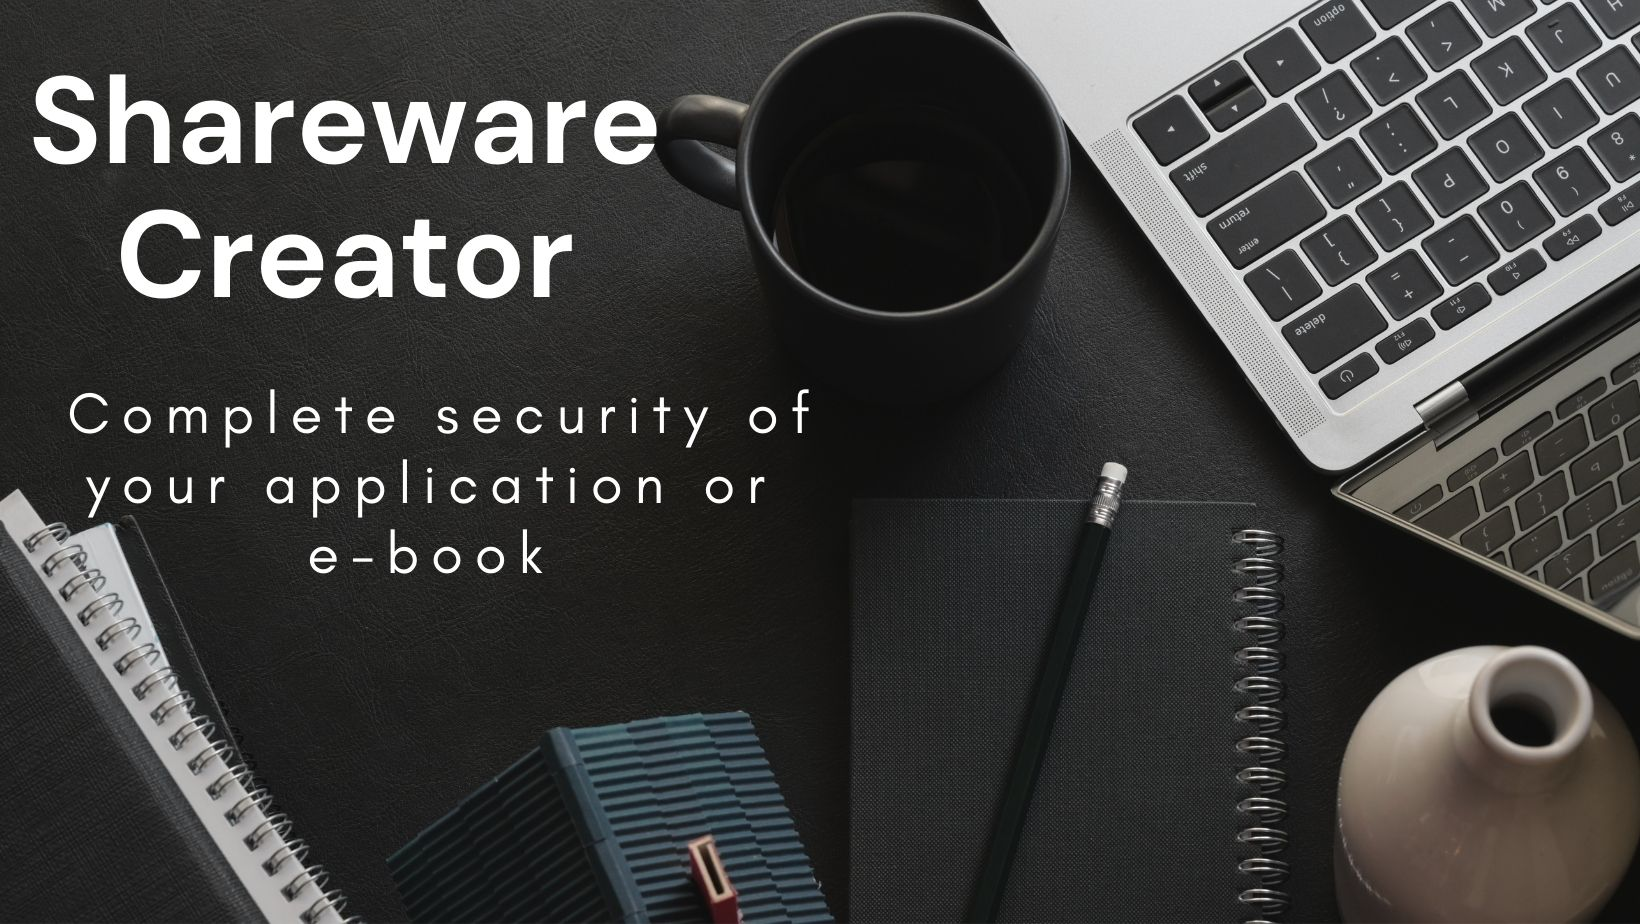 Shareware Creator - Complete security of your application or e-book